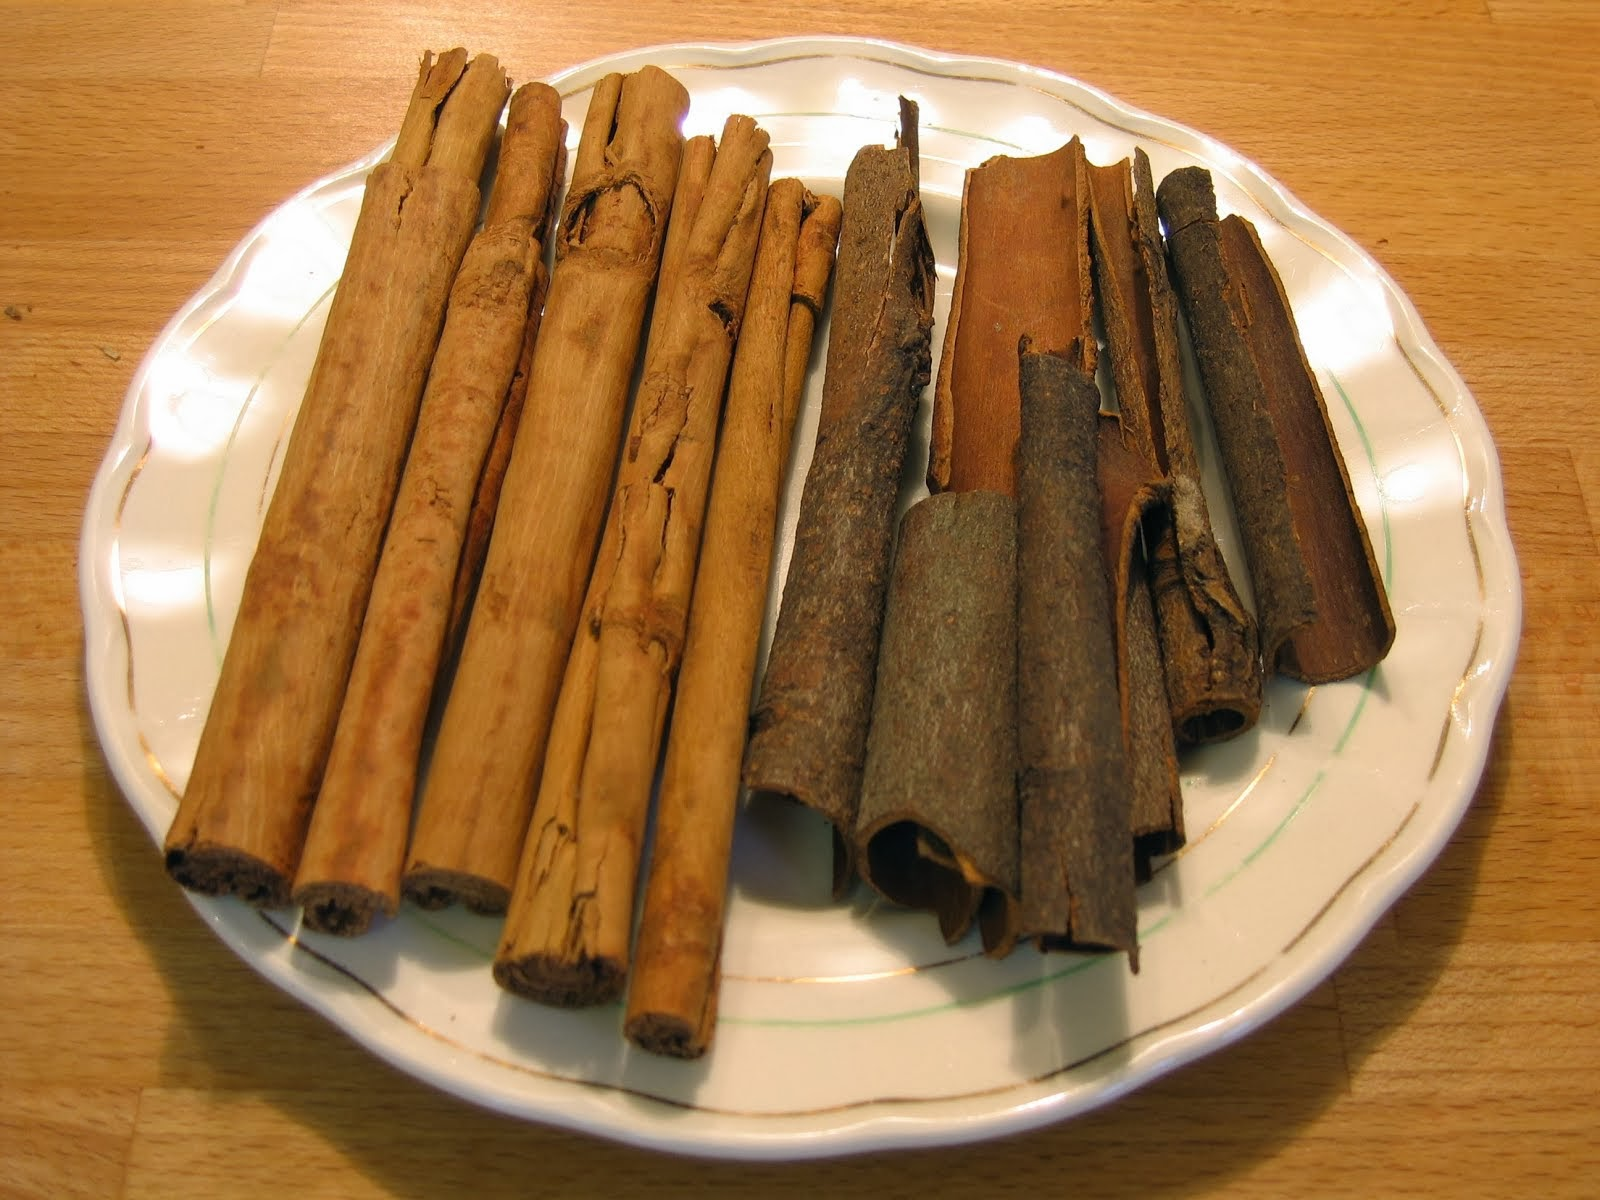 Cinnamon quills and cassia bark